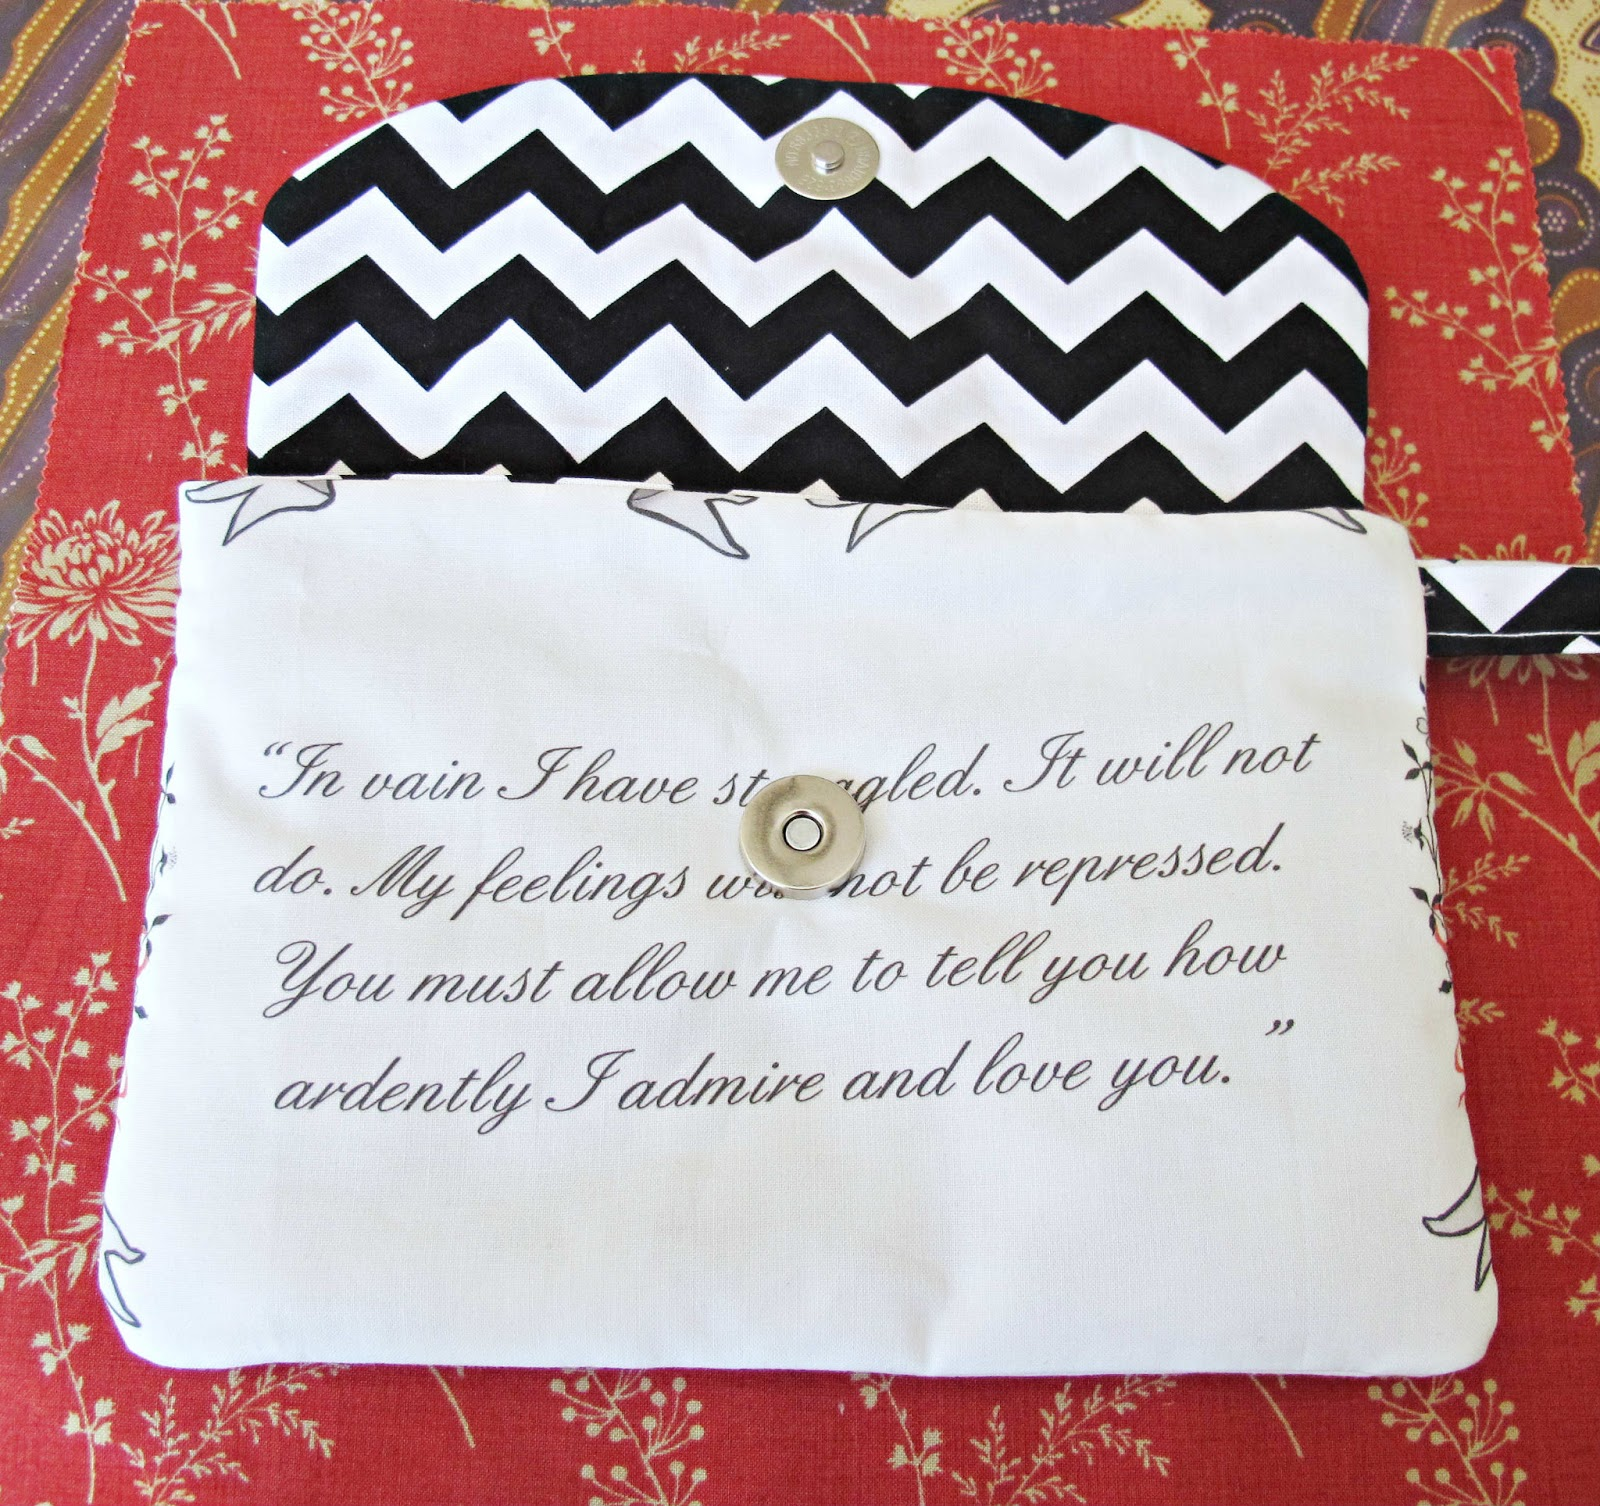 image mr darcy wristlet purse pride and prejudice mr darcy's proposal jane austen spoonflower fabric chevron black white riley blake